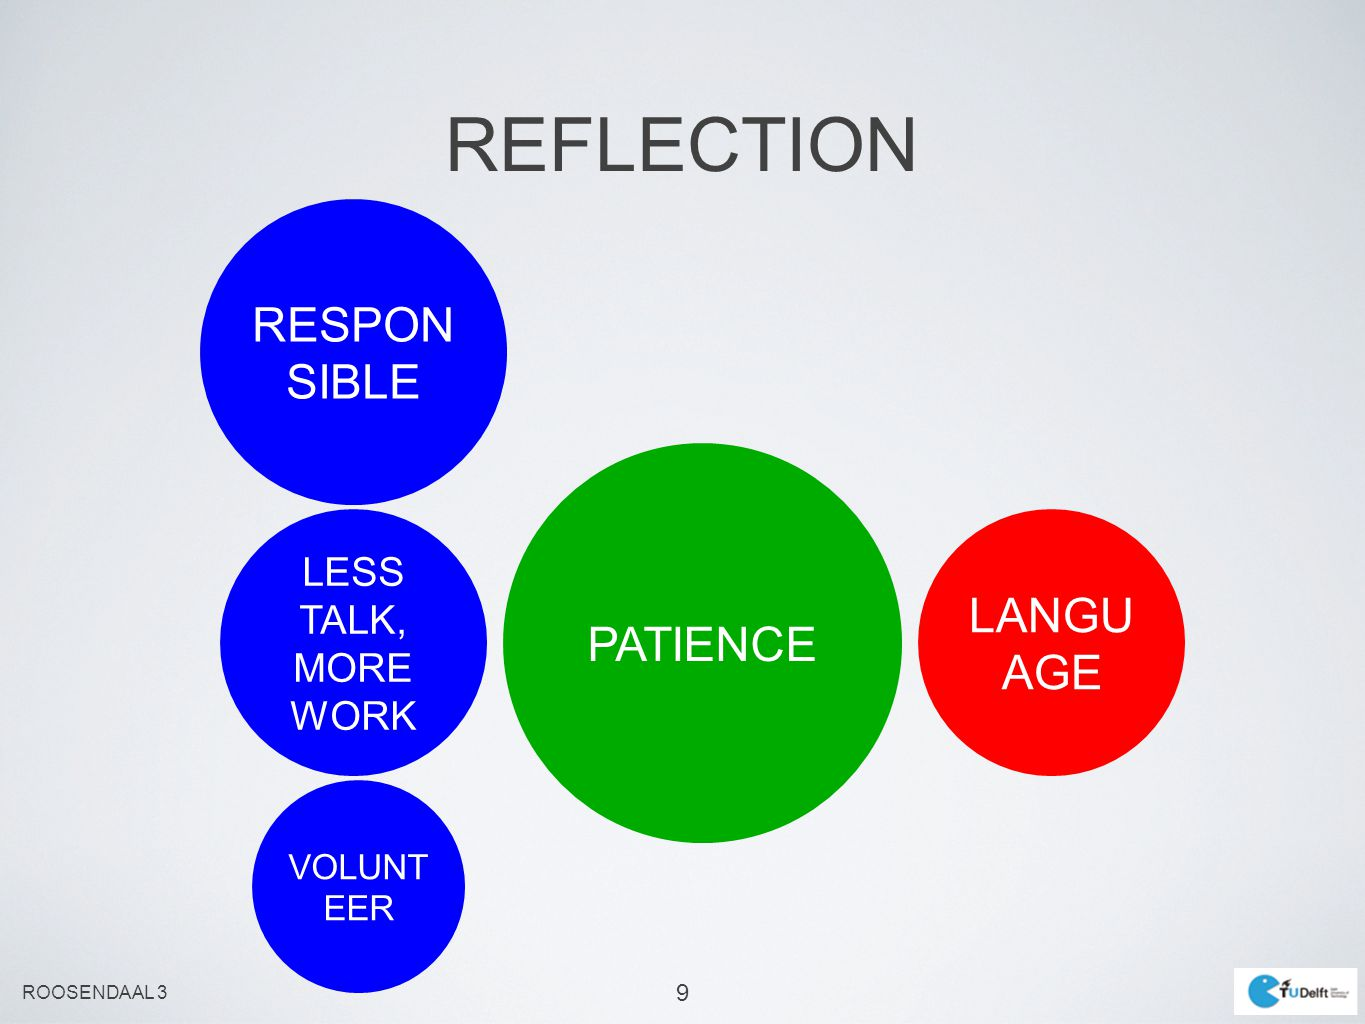 9 REFLECTION LANGU AGE ROOSENDAAL 3 VOLUNT EER RESPON SIBLE LESS TALK, MORE WORK PATIENCE